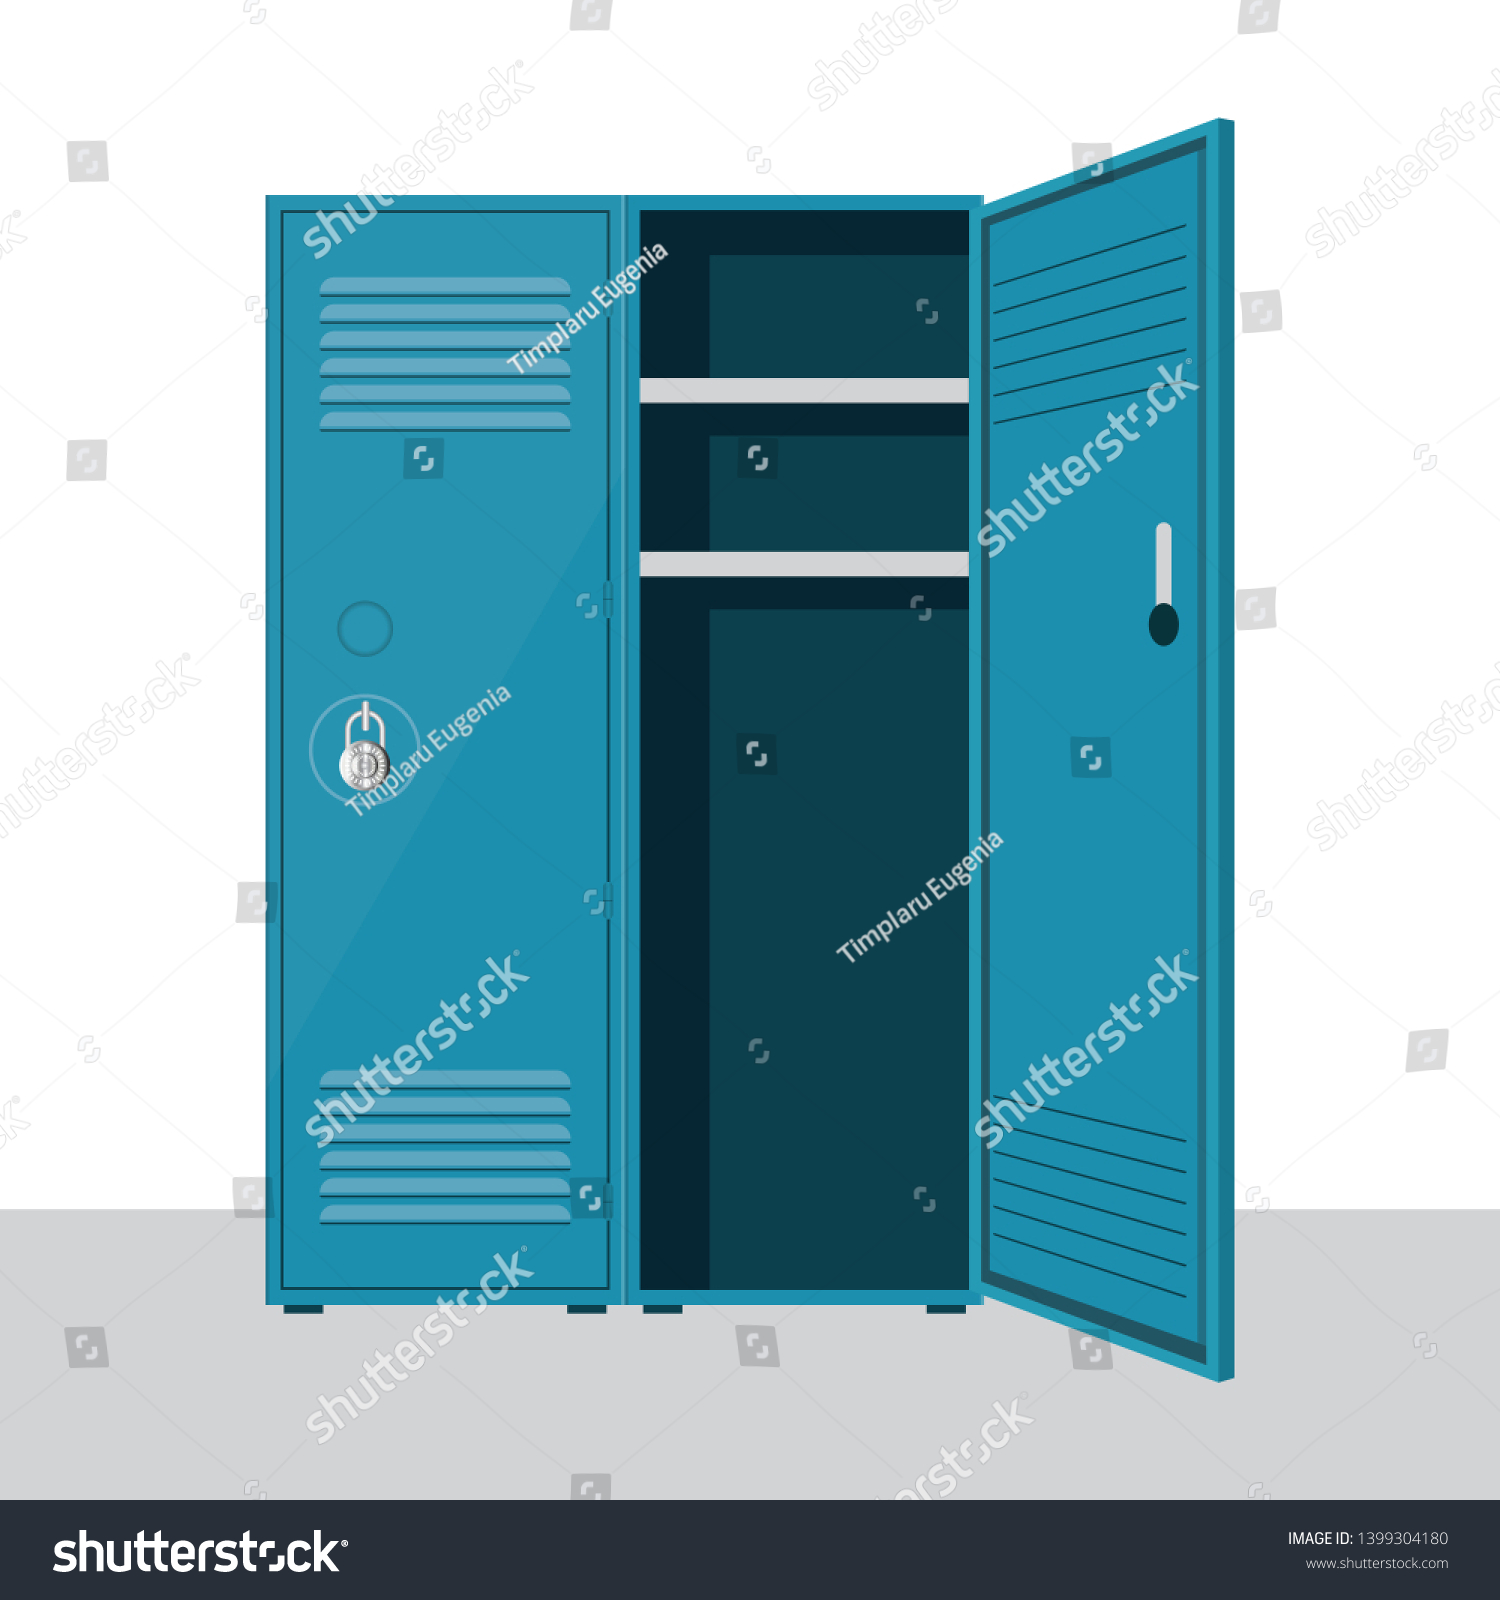 hight resolution of metal school locker vector illustration isolated on white background